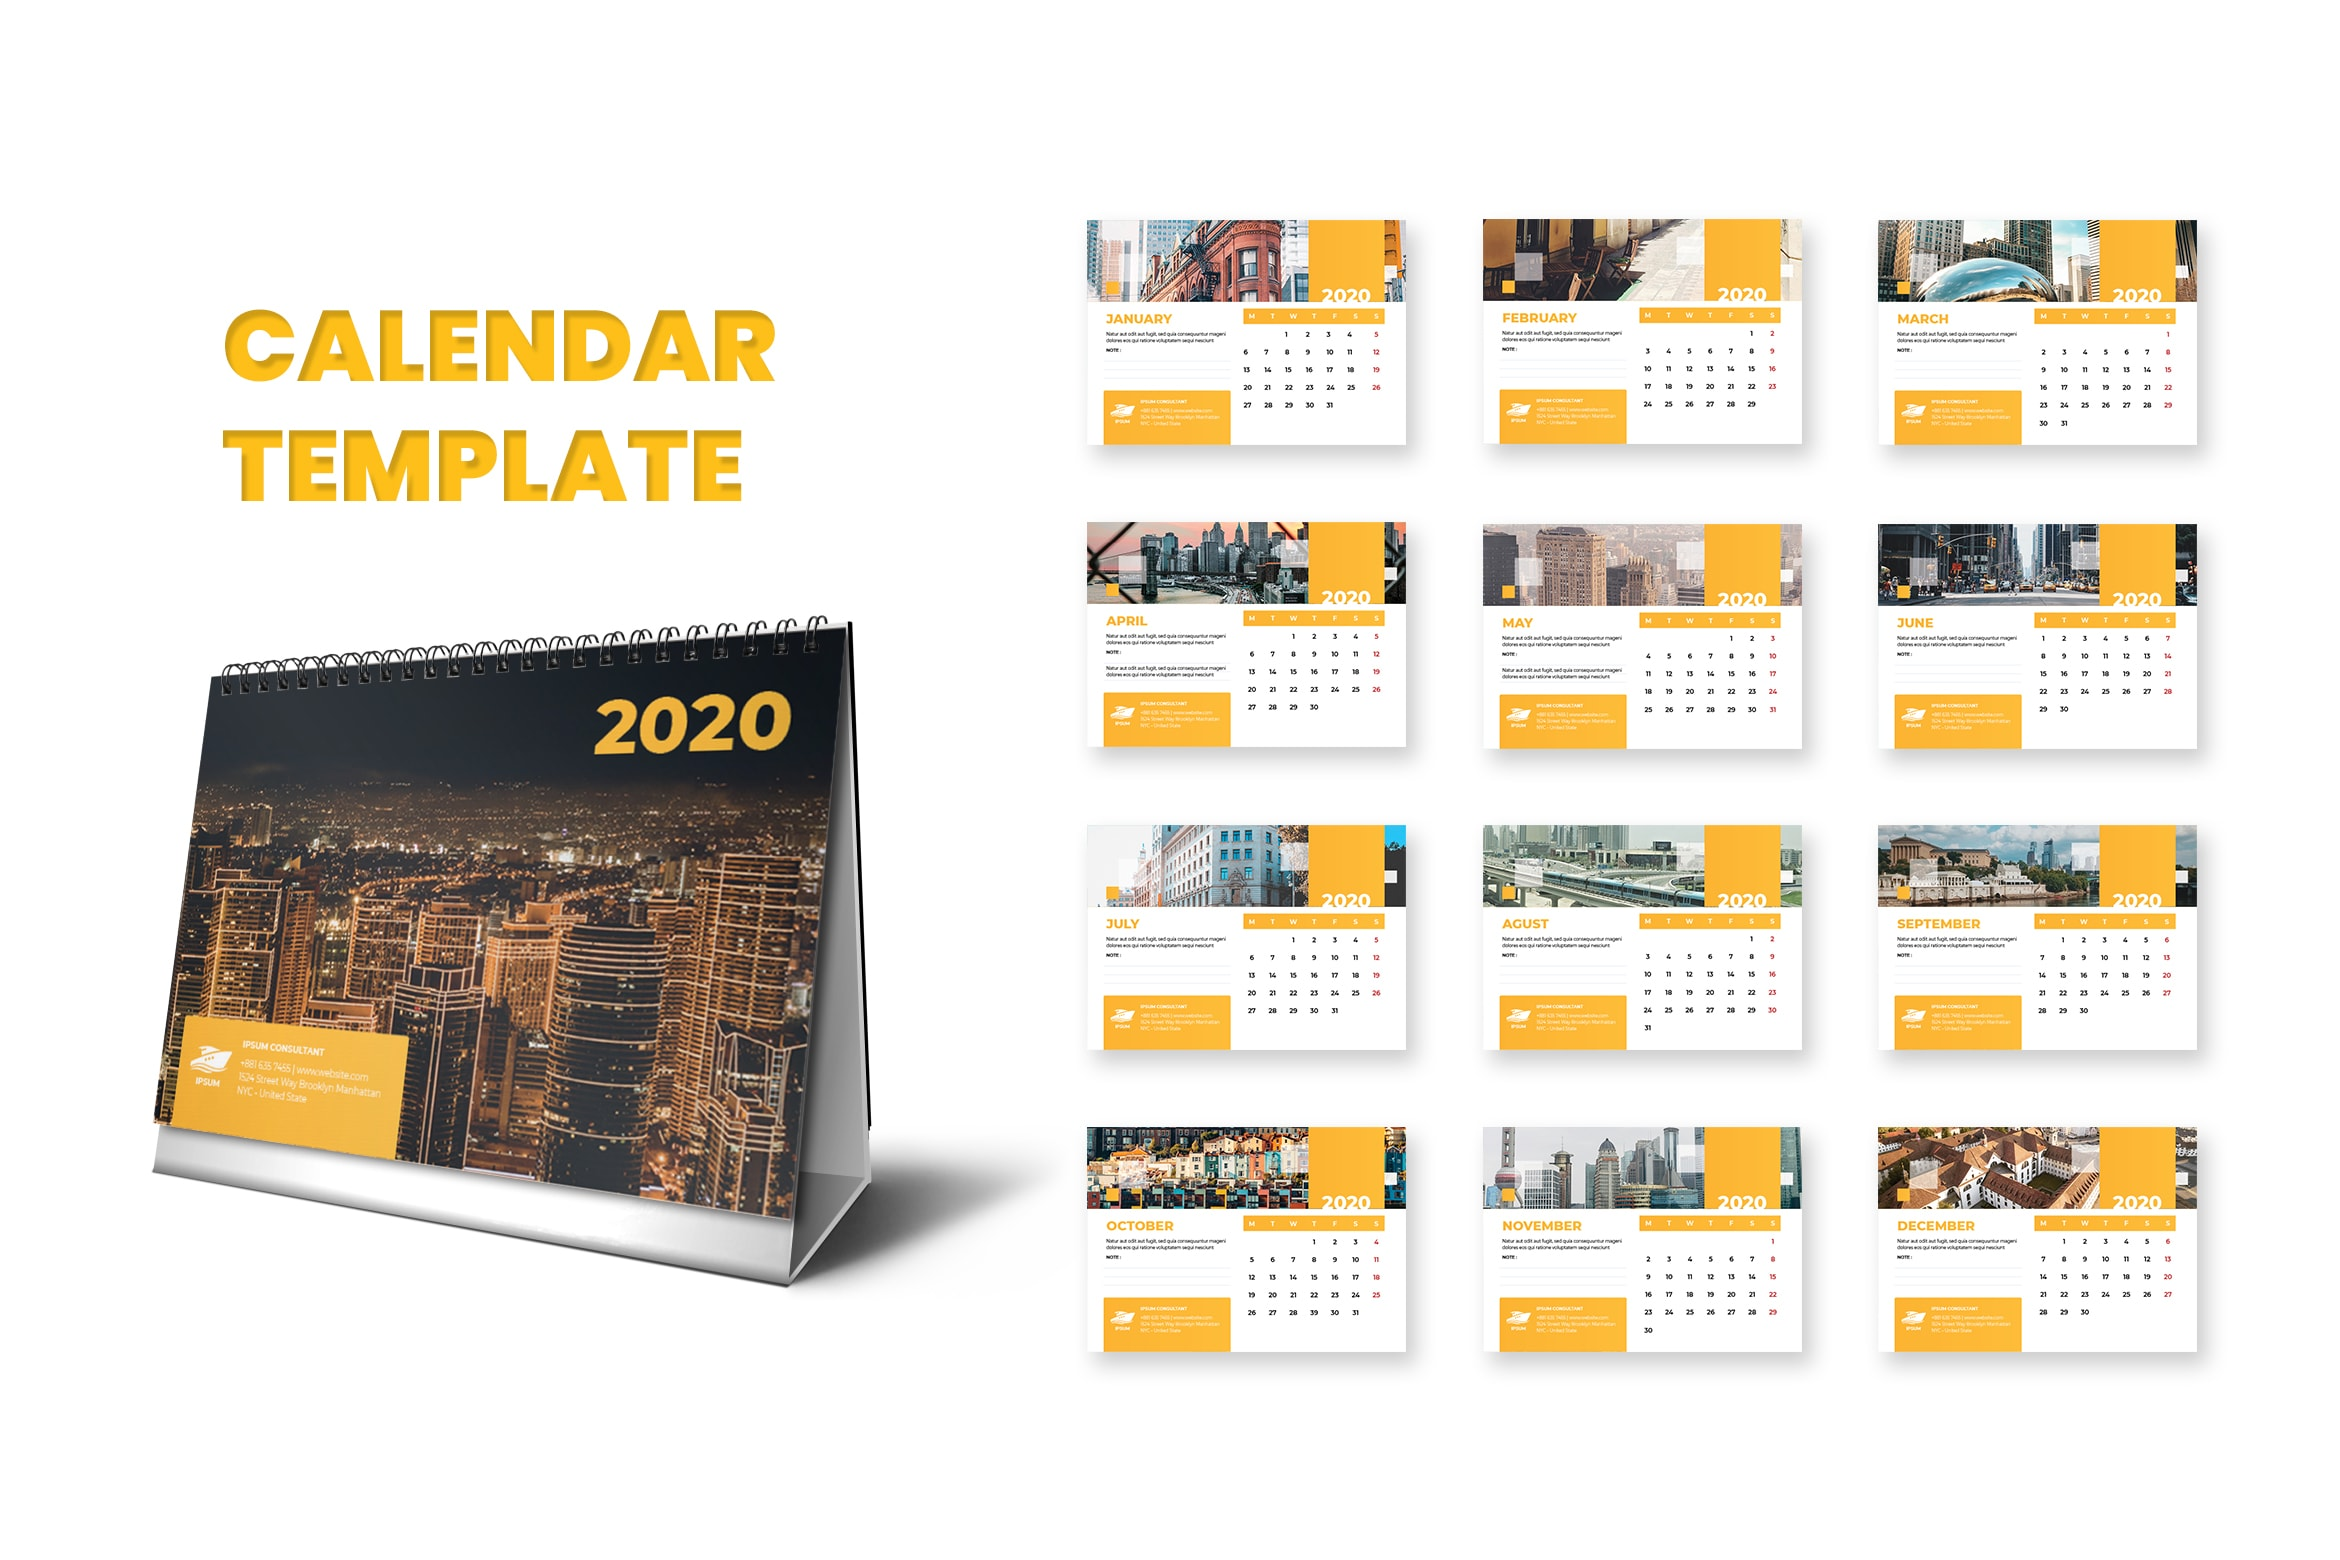 Calender - City View Template